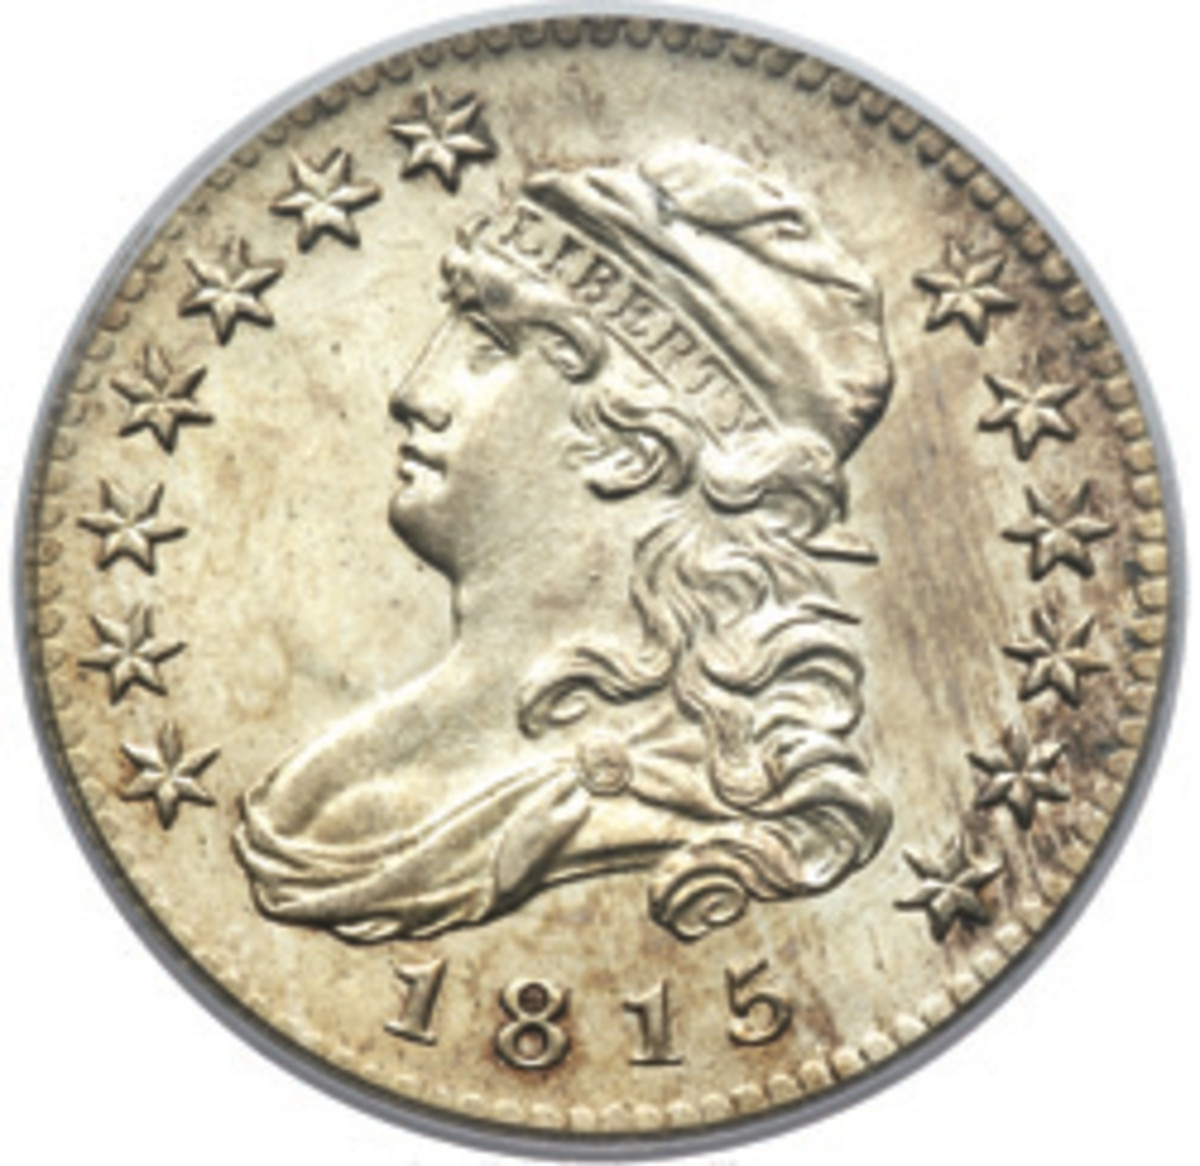 The Capped Bust series debuted in 1815, but it was 1835 before its mintage reached 1 million.